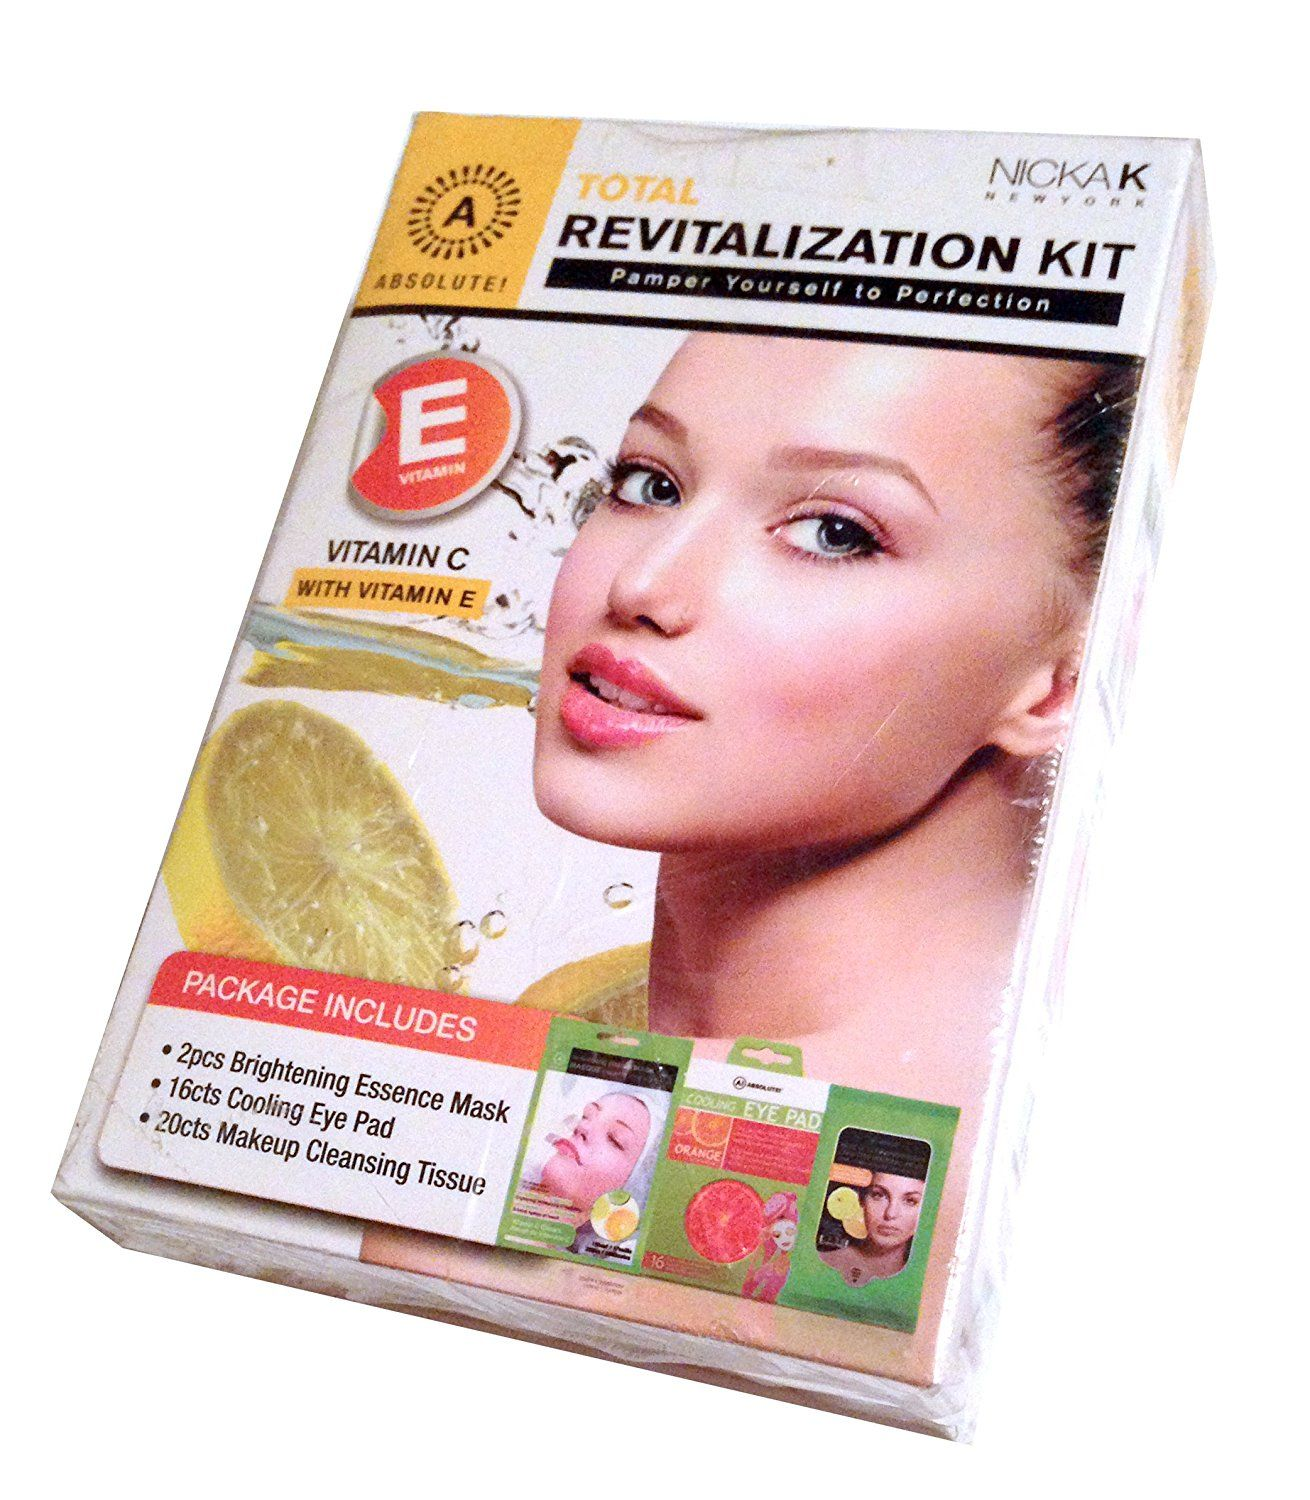 Absolute Total Revitalization Complete At Home Facial Spa Kit with Vitamin E and Vitamin C - Brightening Masks, Cooling Eye Pads, Cleansing Tissues * Click image to review more details.